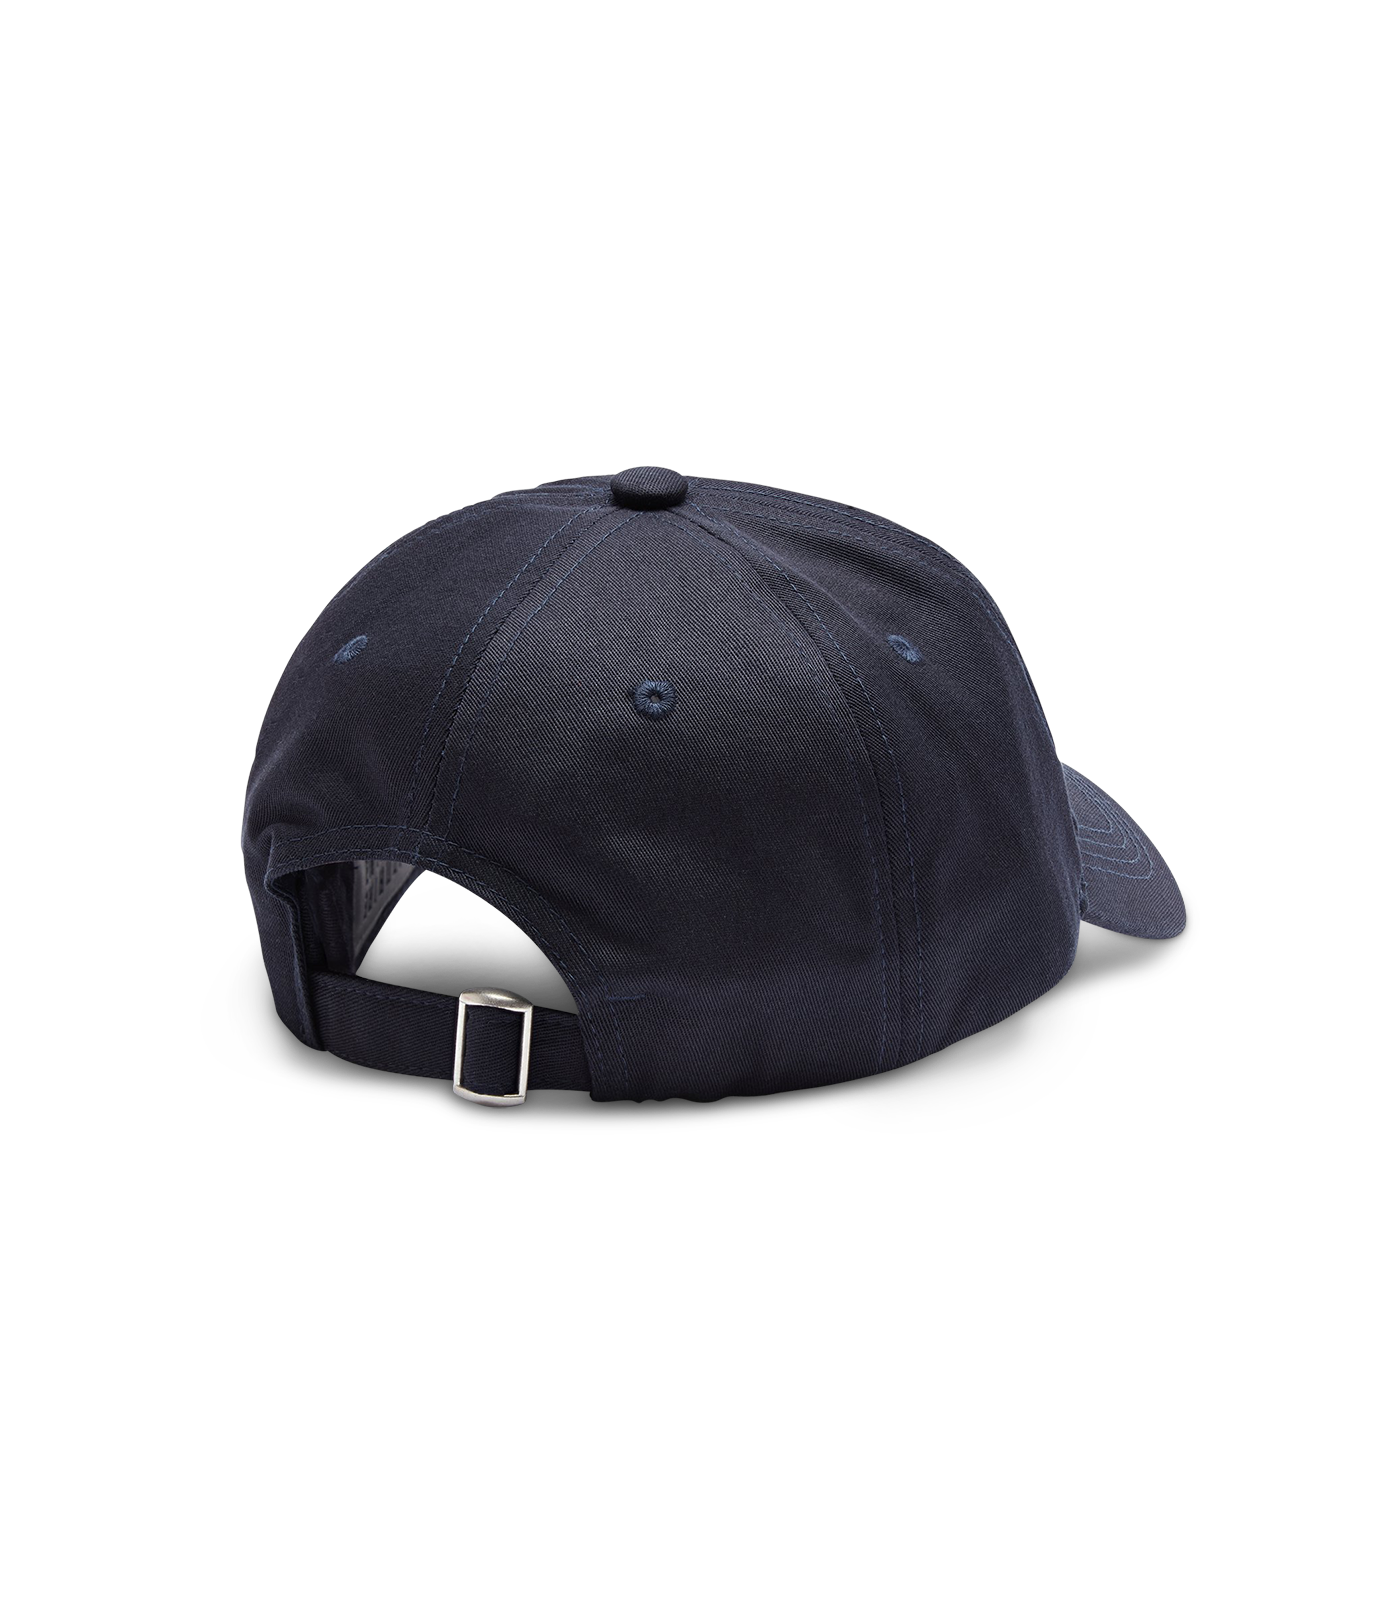 EMBROIDERED CURVED VISOR CAP - NAVY